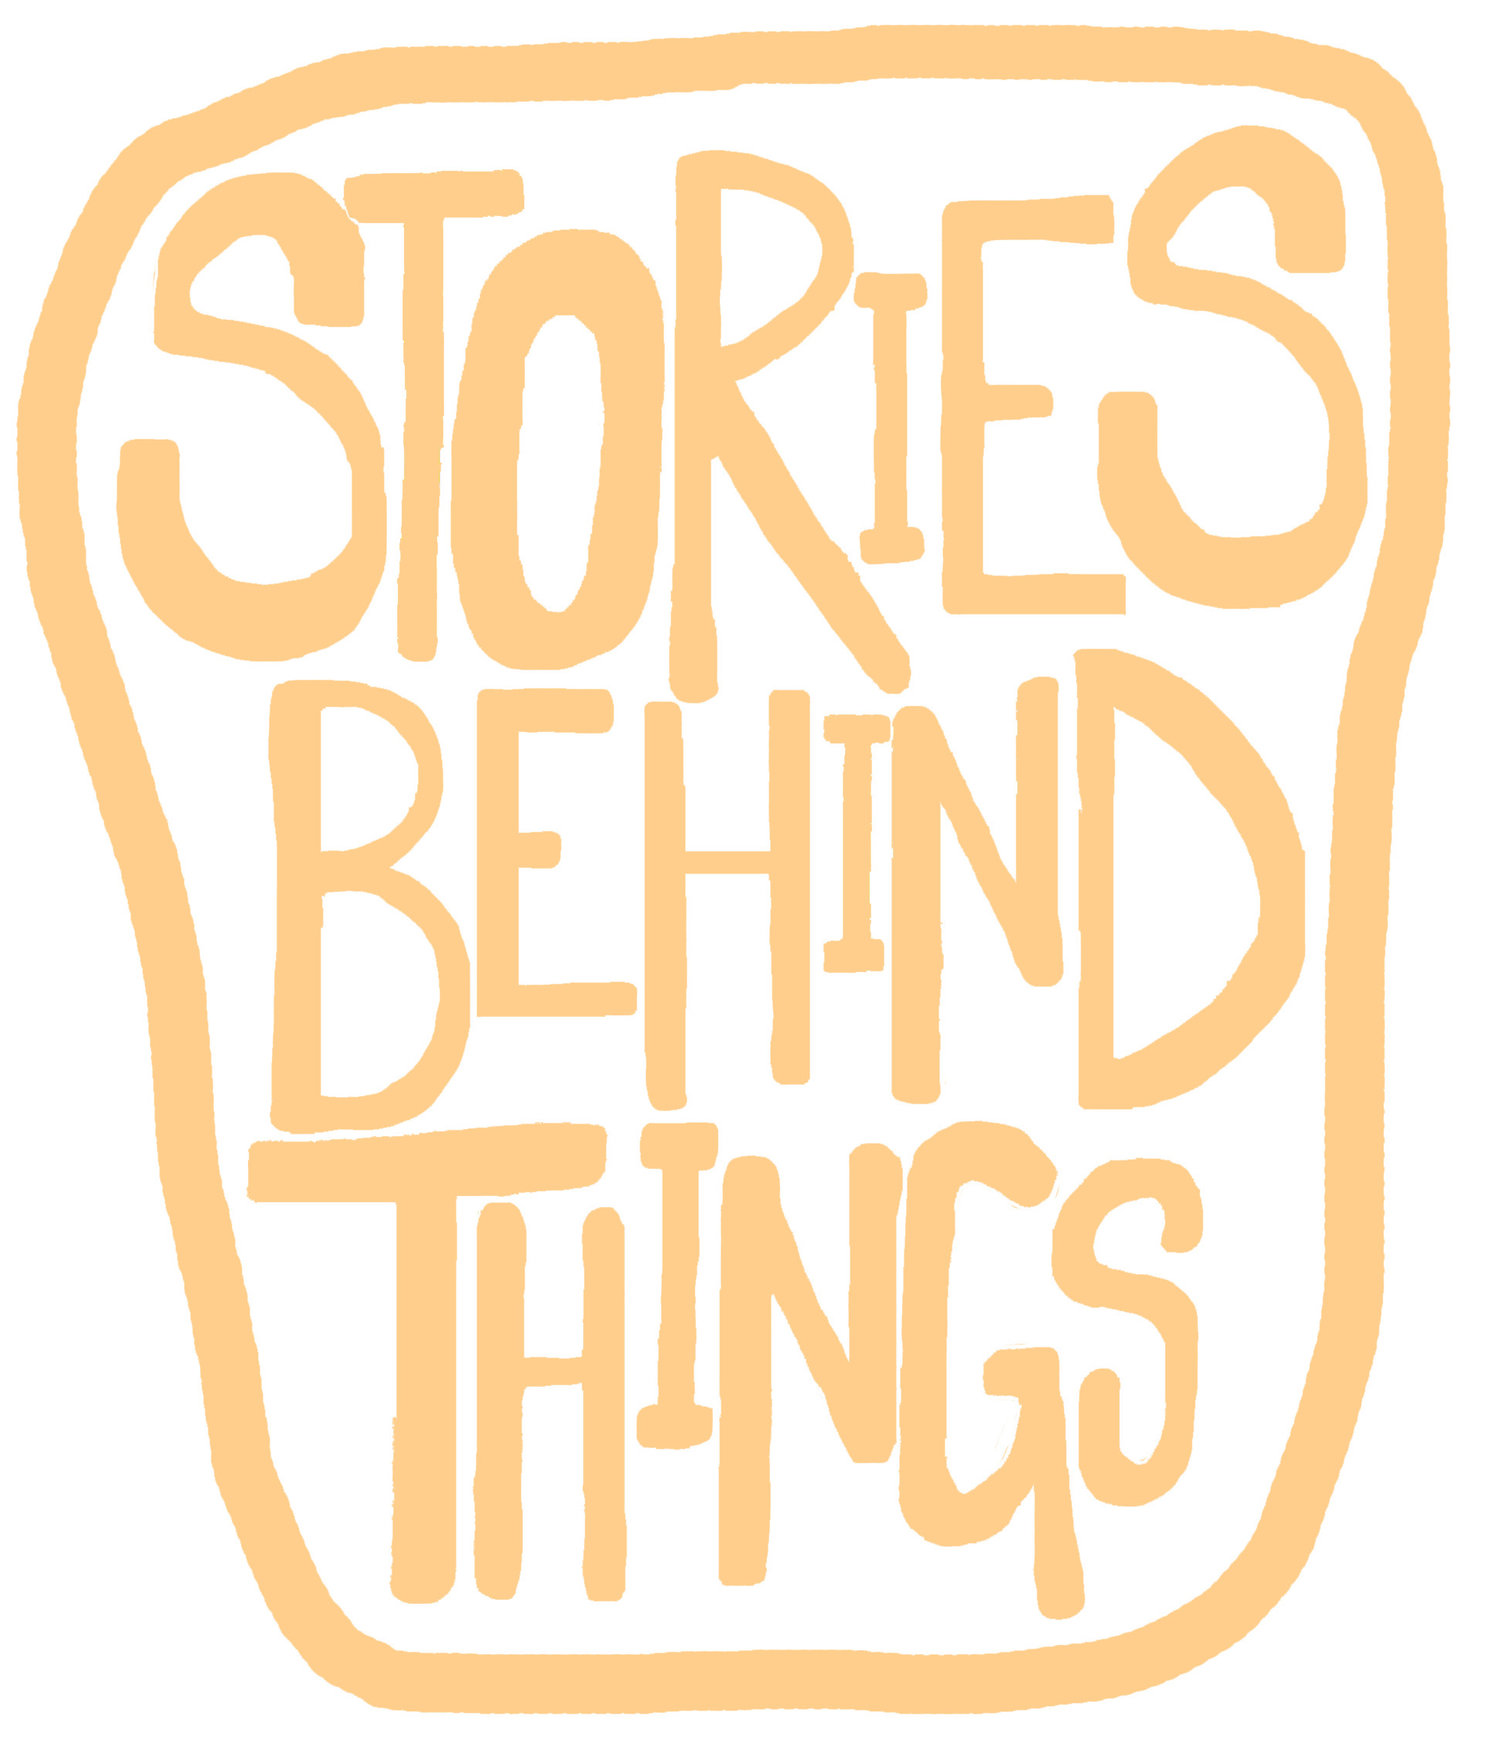 storiesbehindthings